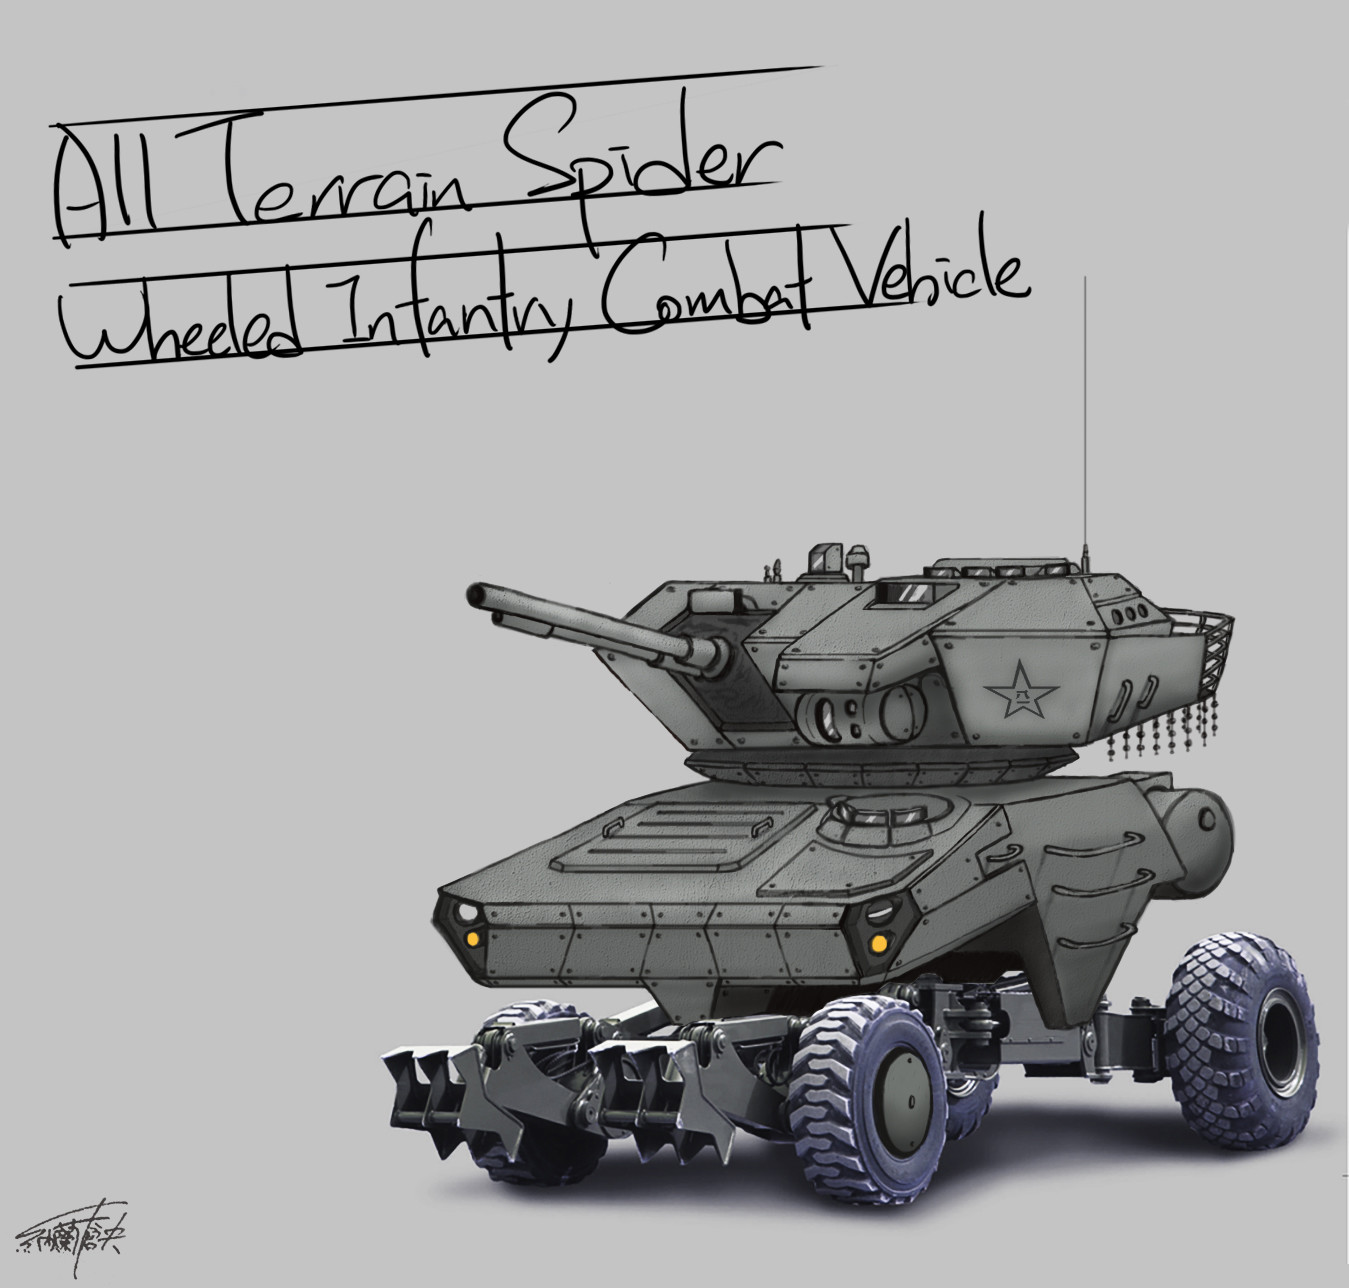 All Terrain Spider Wheeled Infantry Combat Vehicle